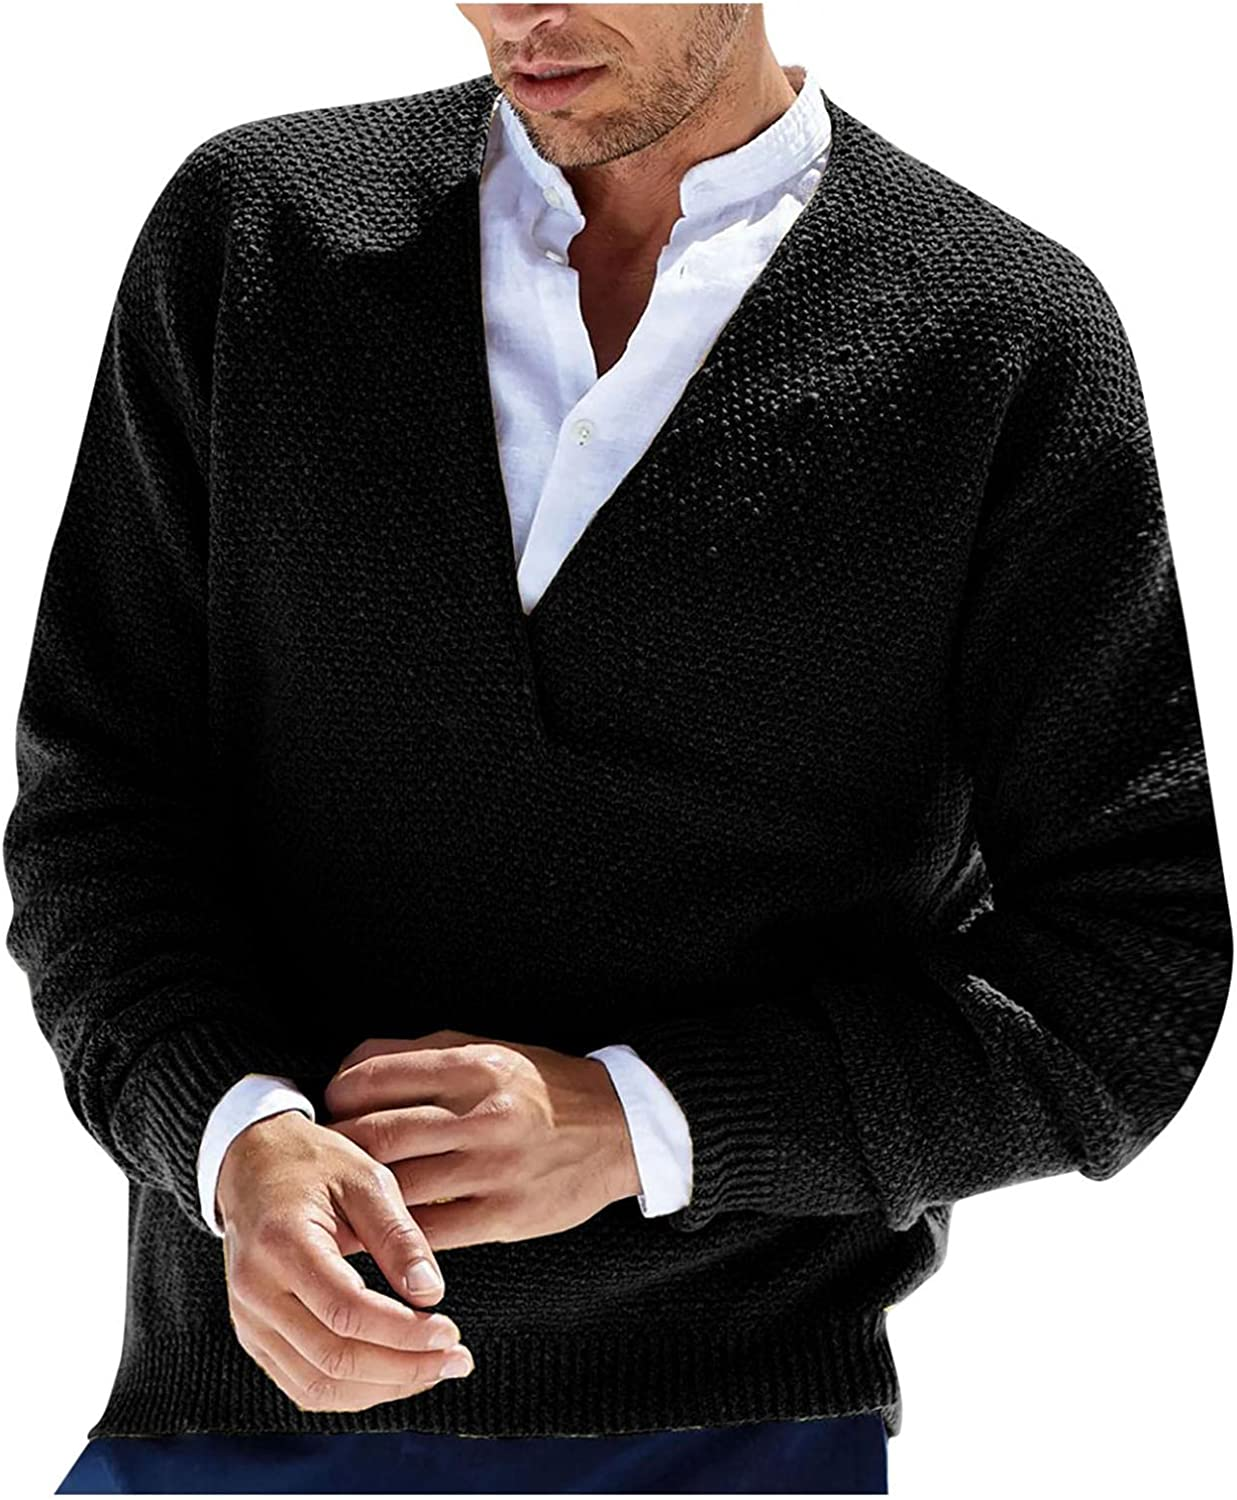 KEEYO Mens Casual Slim Fit Pullover Sweaters V-Neck Cable Knitted Basic Designed Lightweight Sweater Jacket Jumper Tops